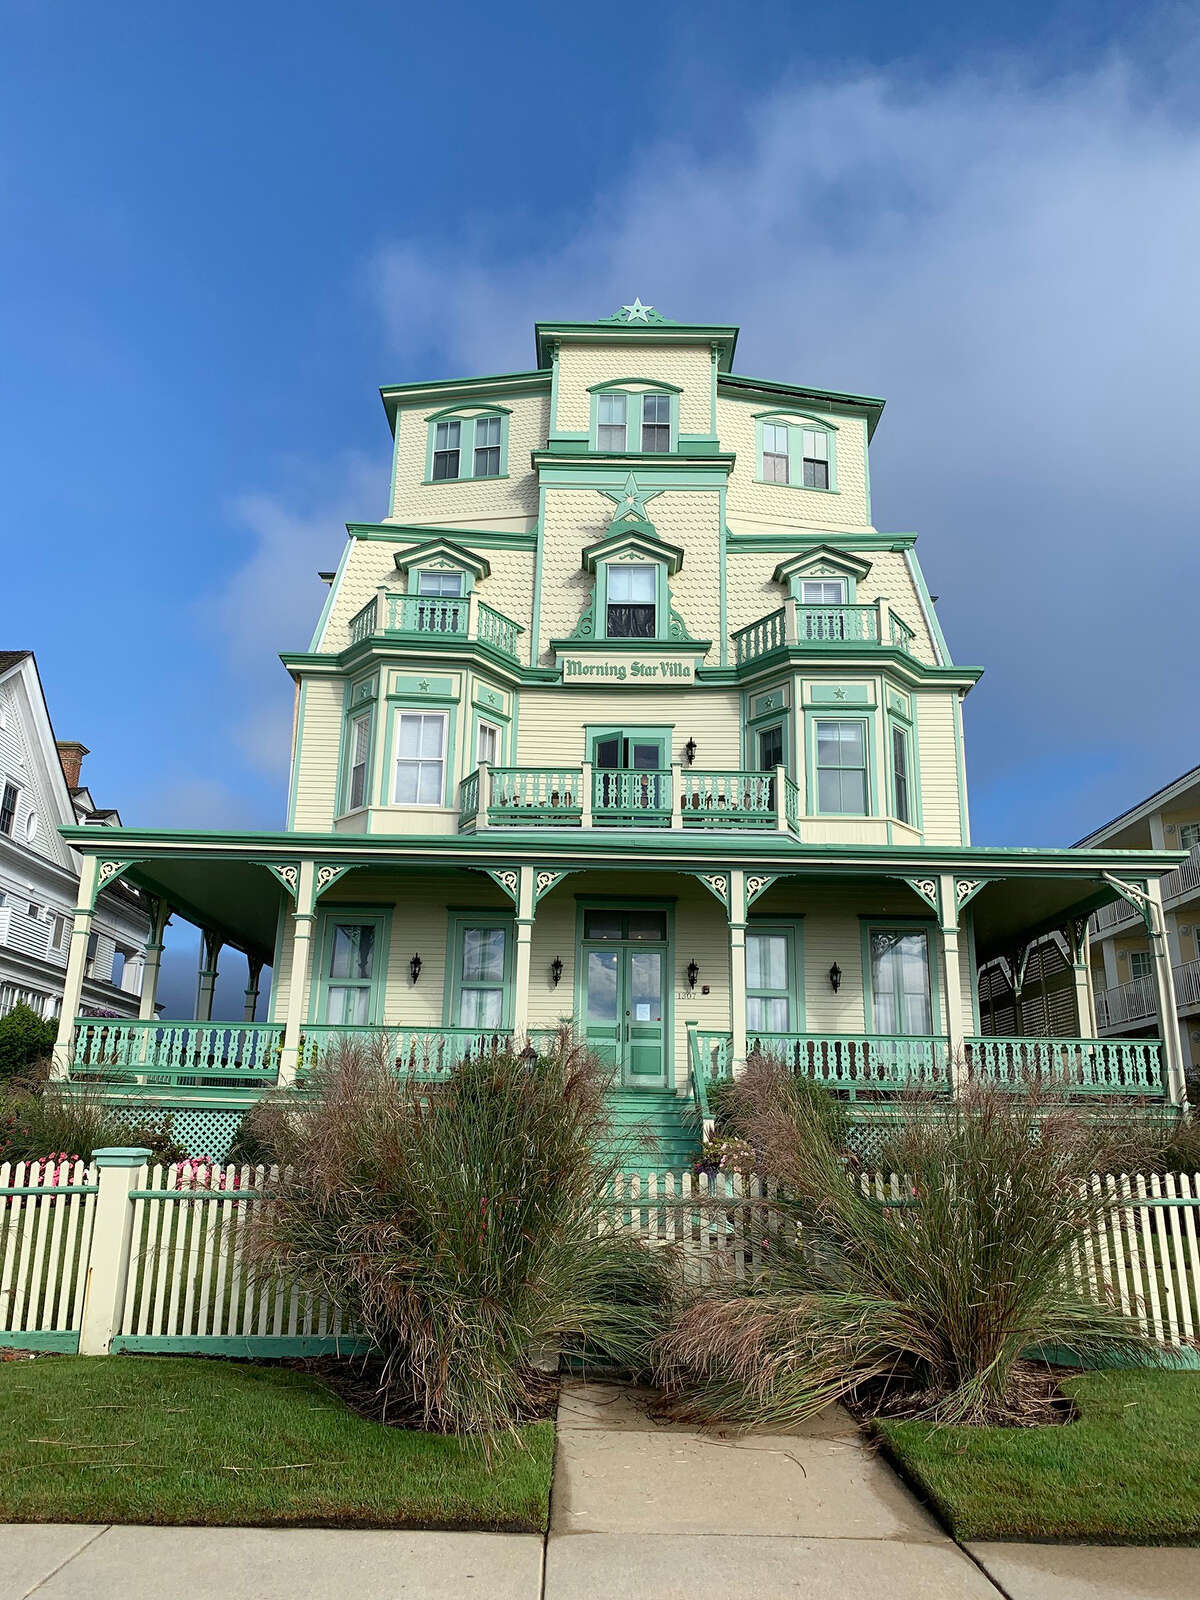 Several streets in Cape May boast colorful Victorian homes.